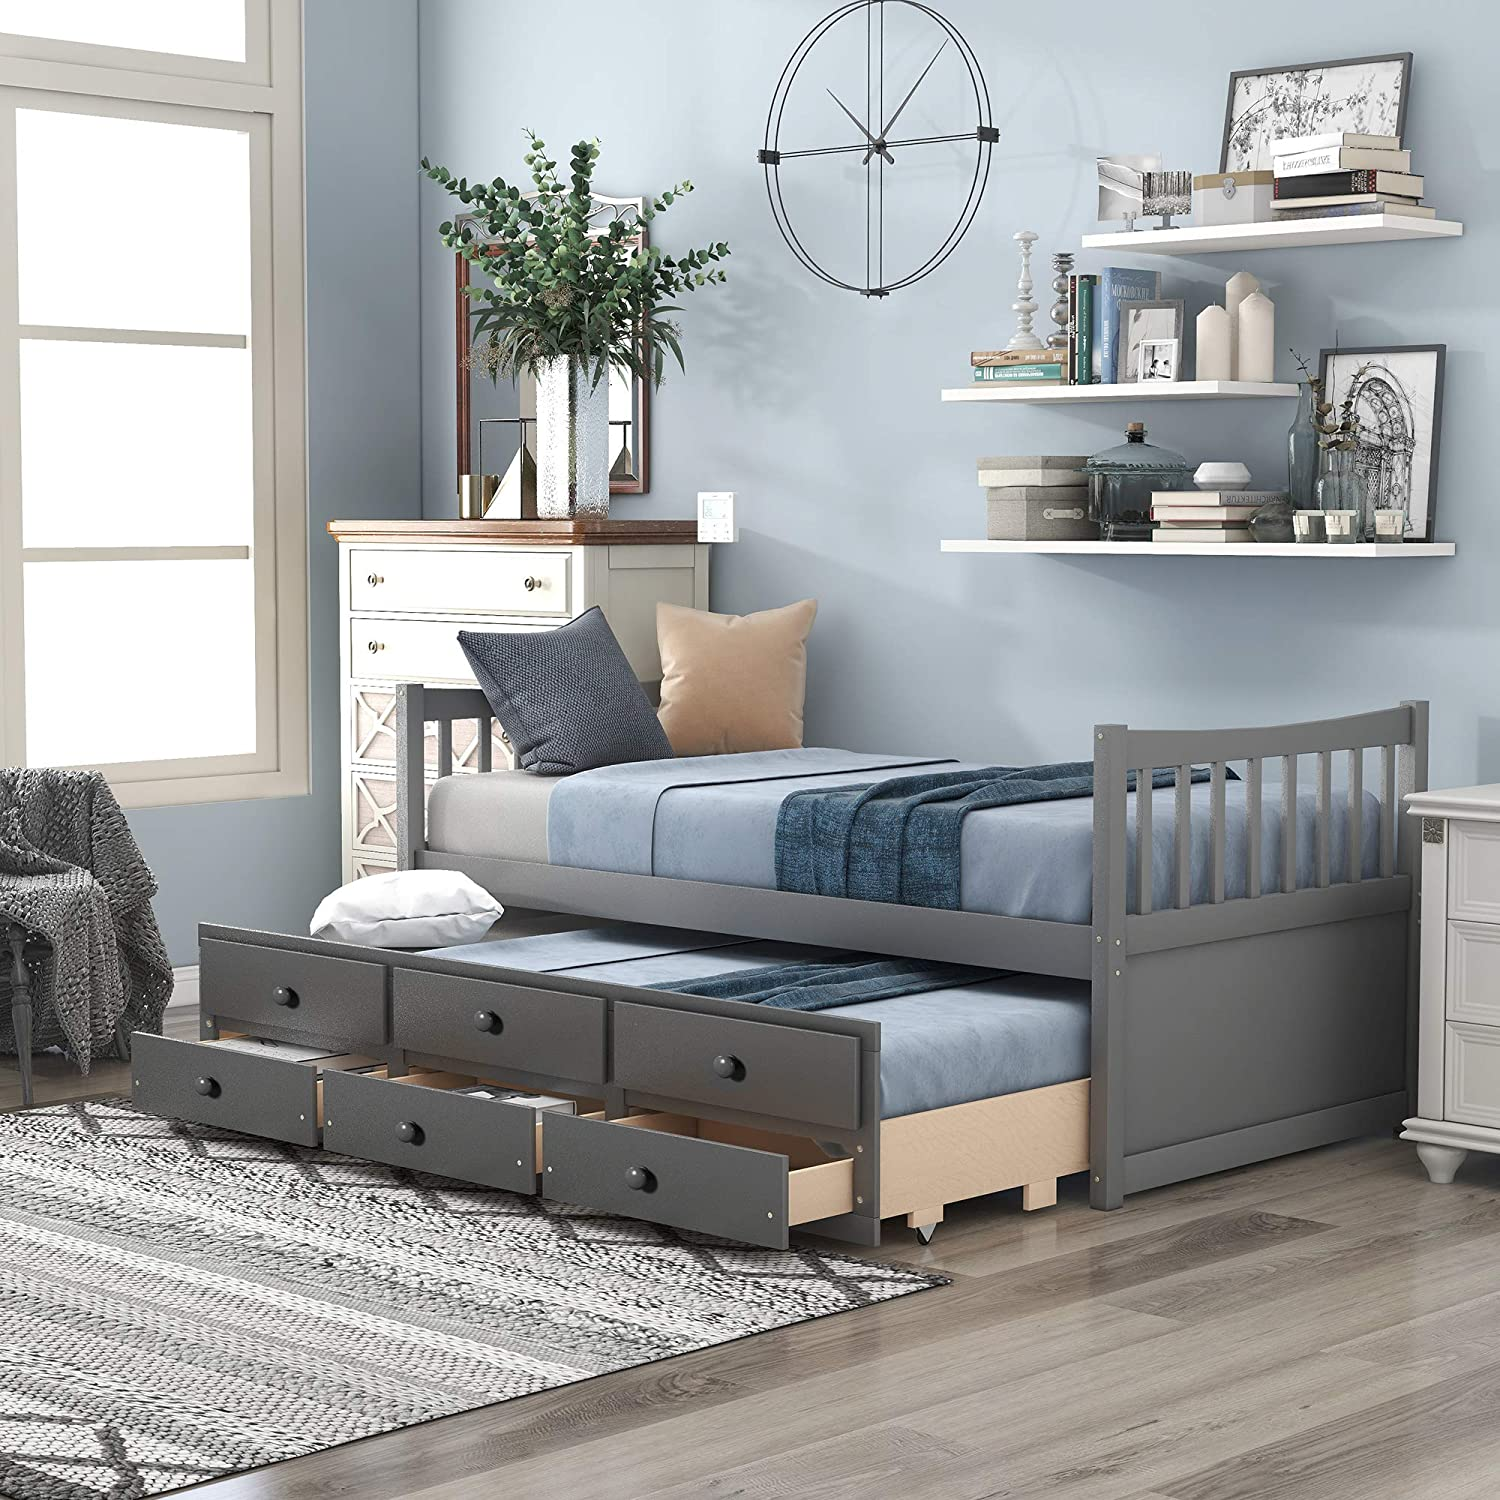 Captain's Storage Daybed with Trundle and Drawers (Grey)